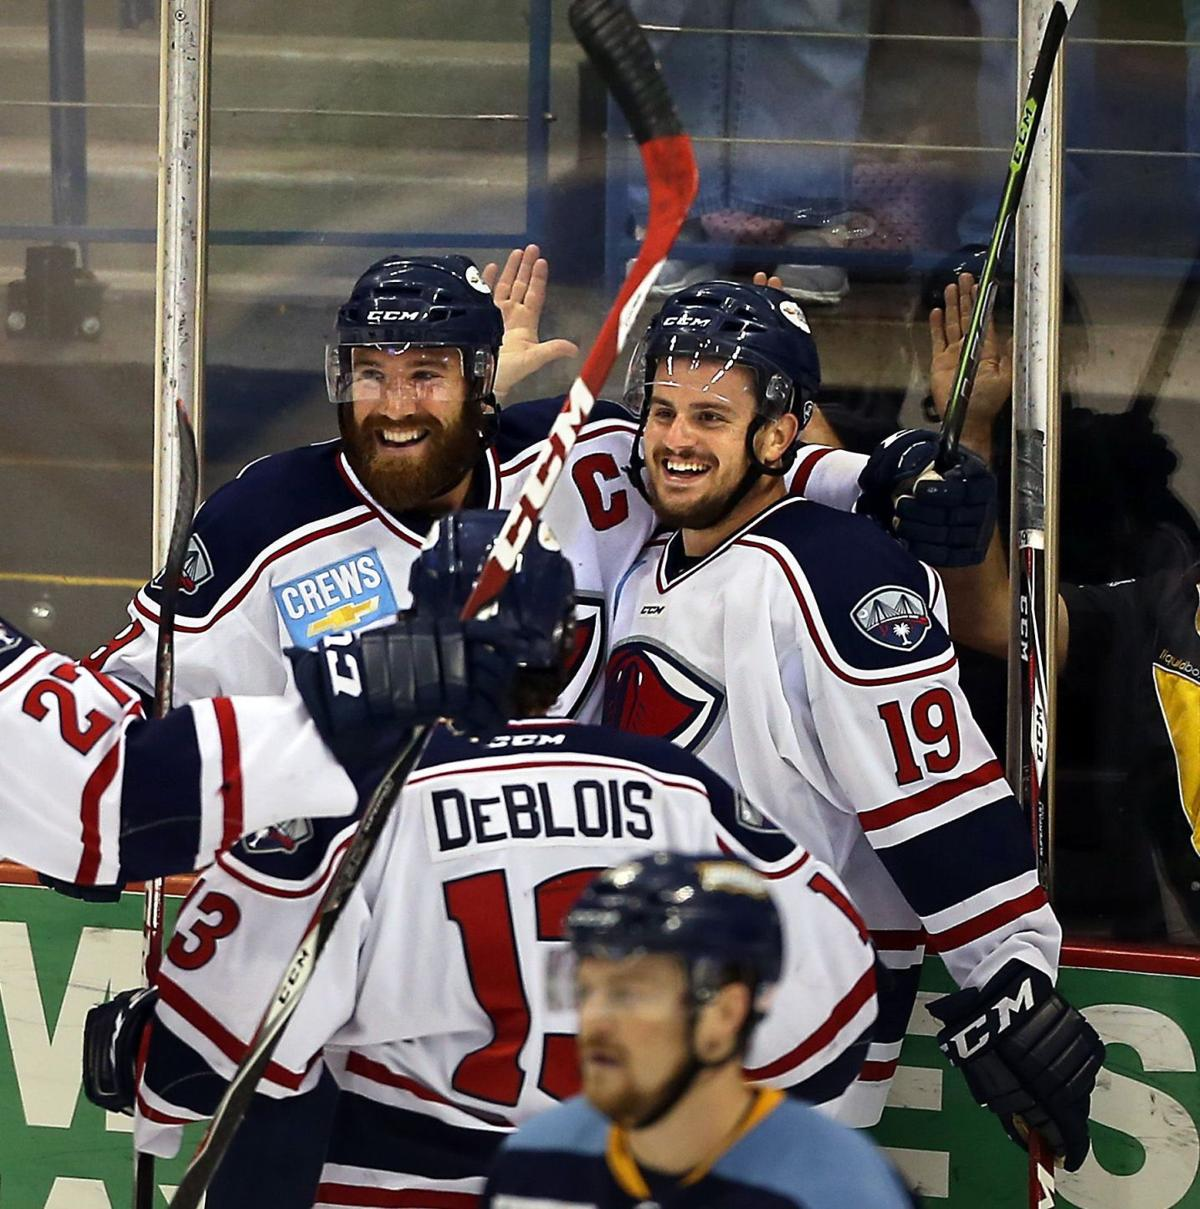 Stingrays look to wrap up series with Toledo Friday night